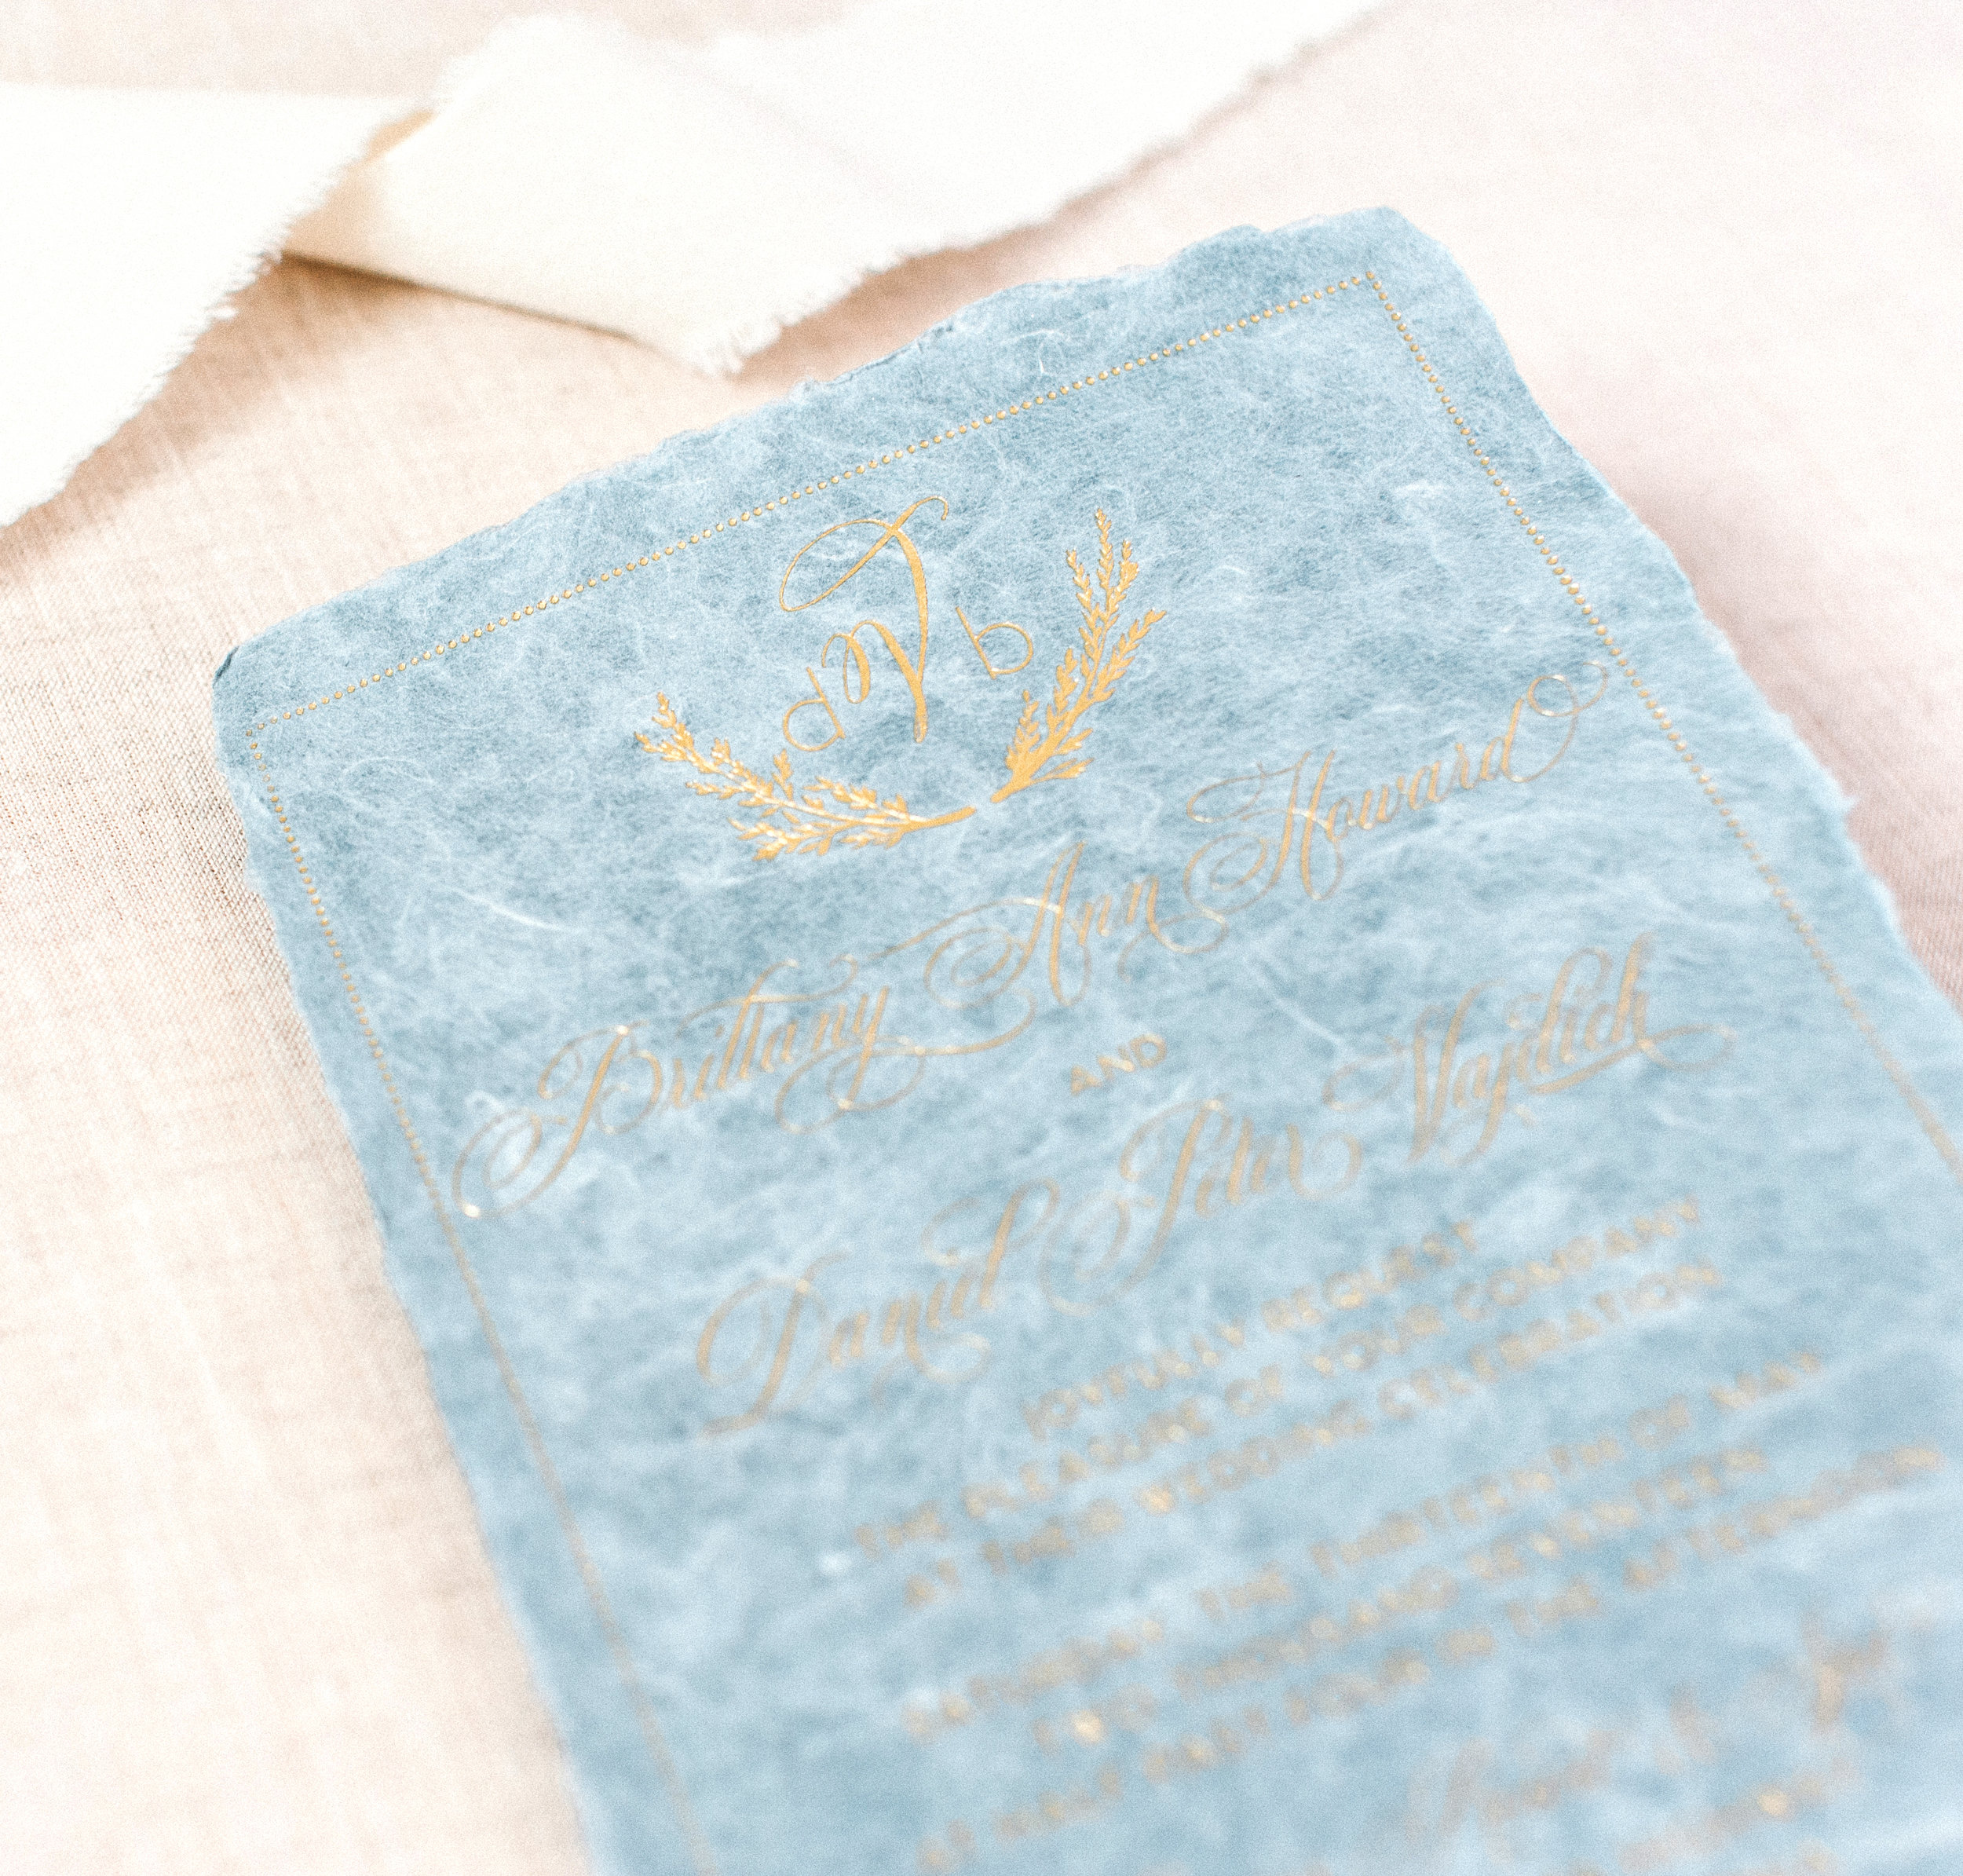 HANDMADE PAPER & GOLD FOIL WEDDING INVITATIONS